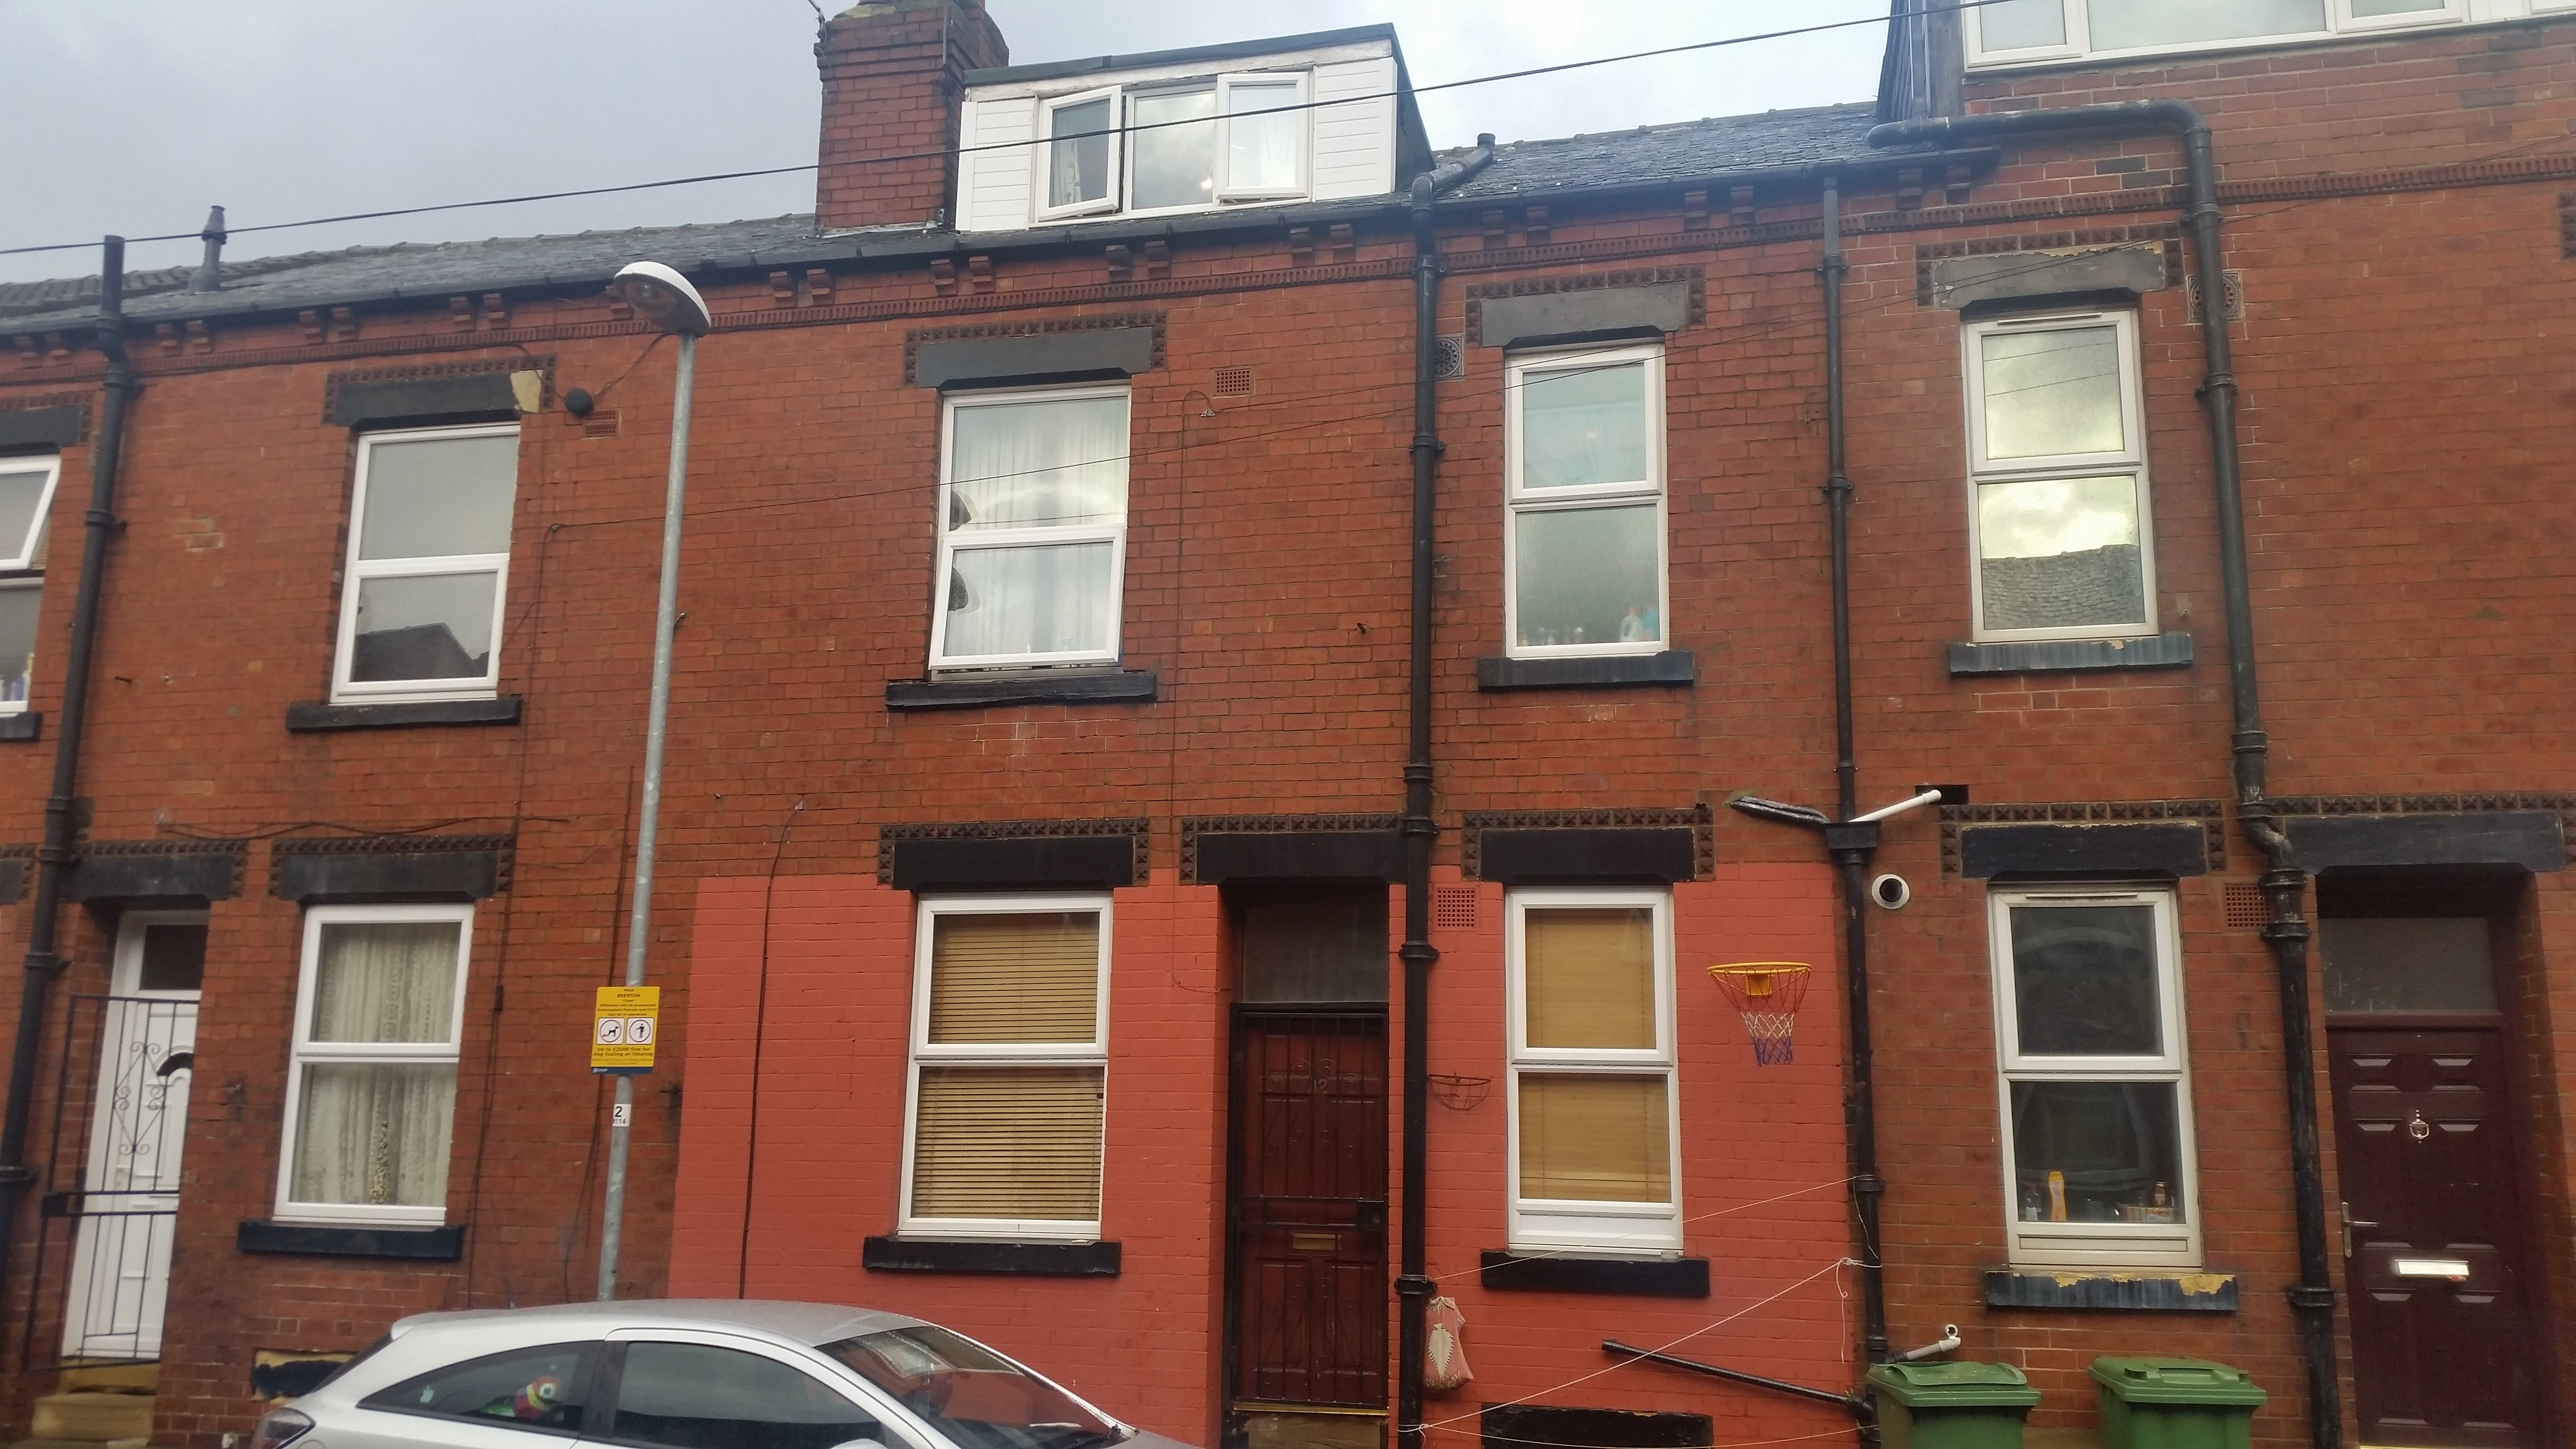 Best 2 Bedroom Terraced House To Rent Marley Street Leeds Ls11 8Ql – Thehouseshop Com With Pictures